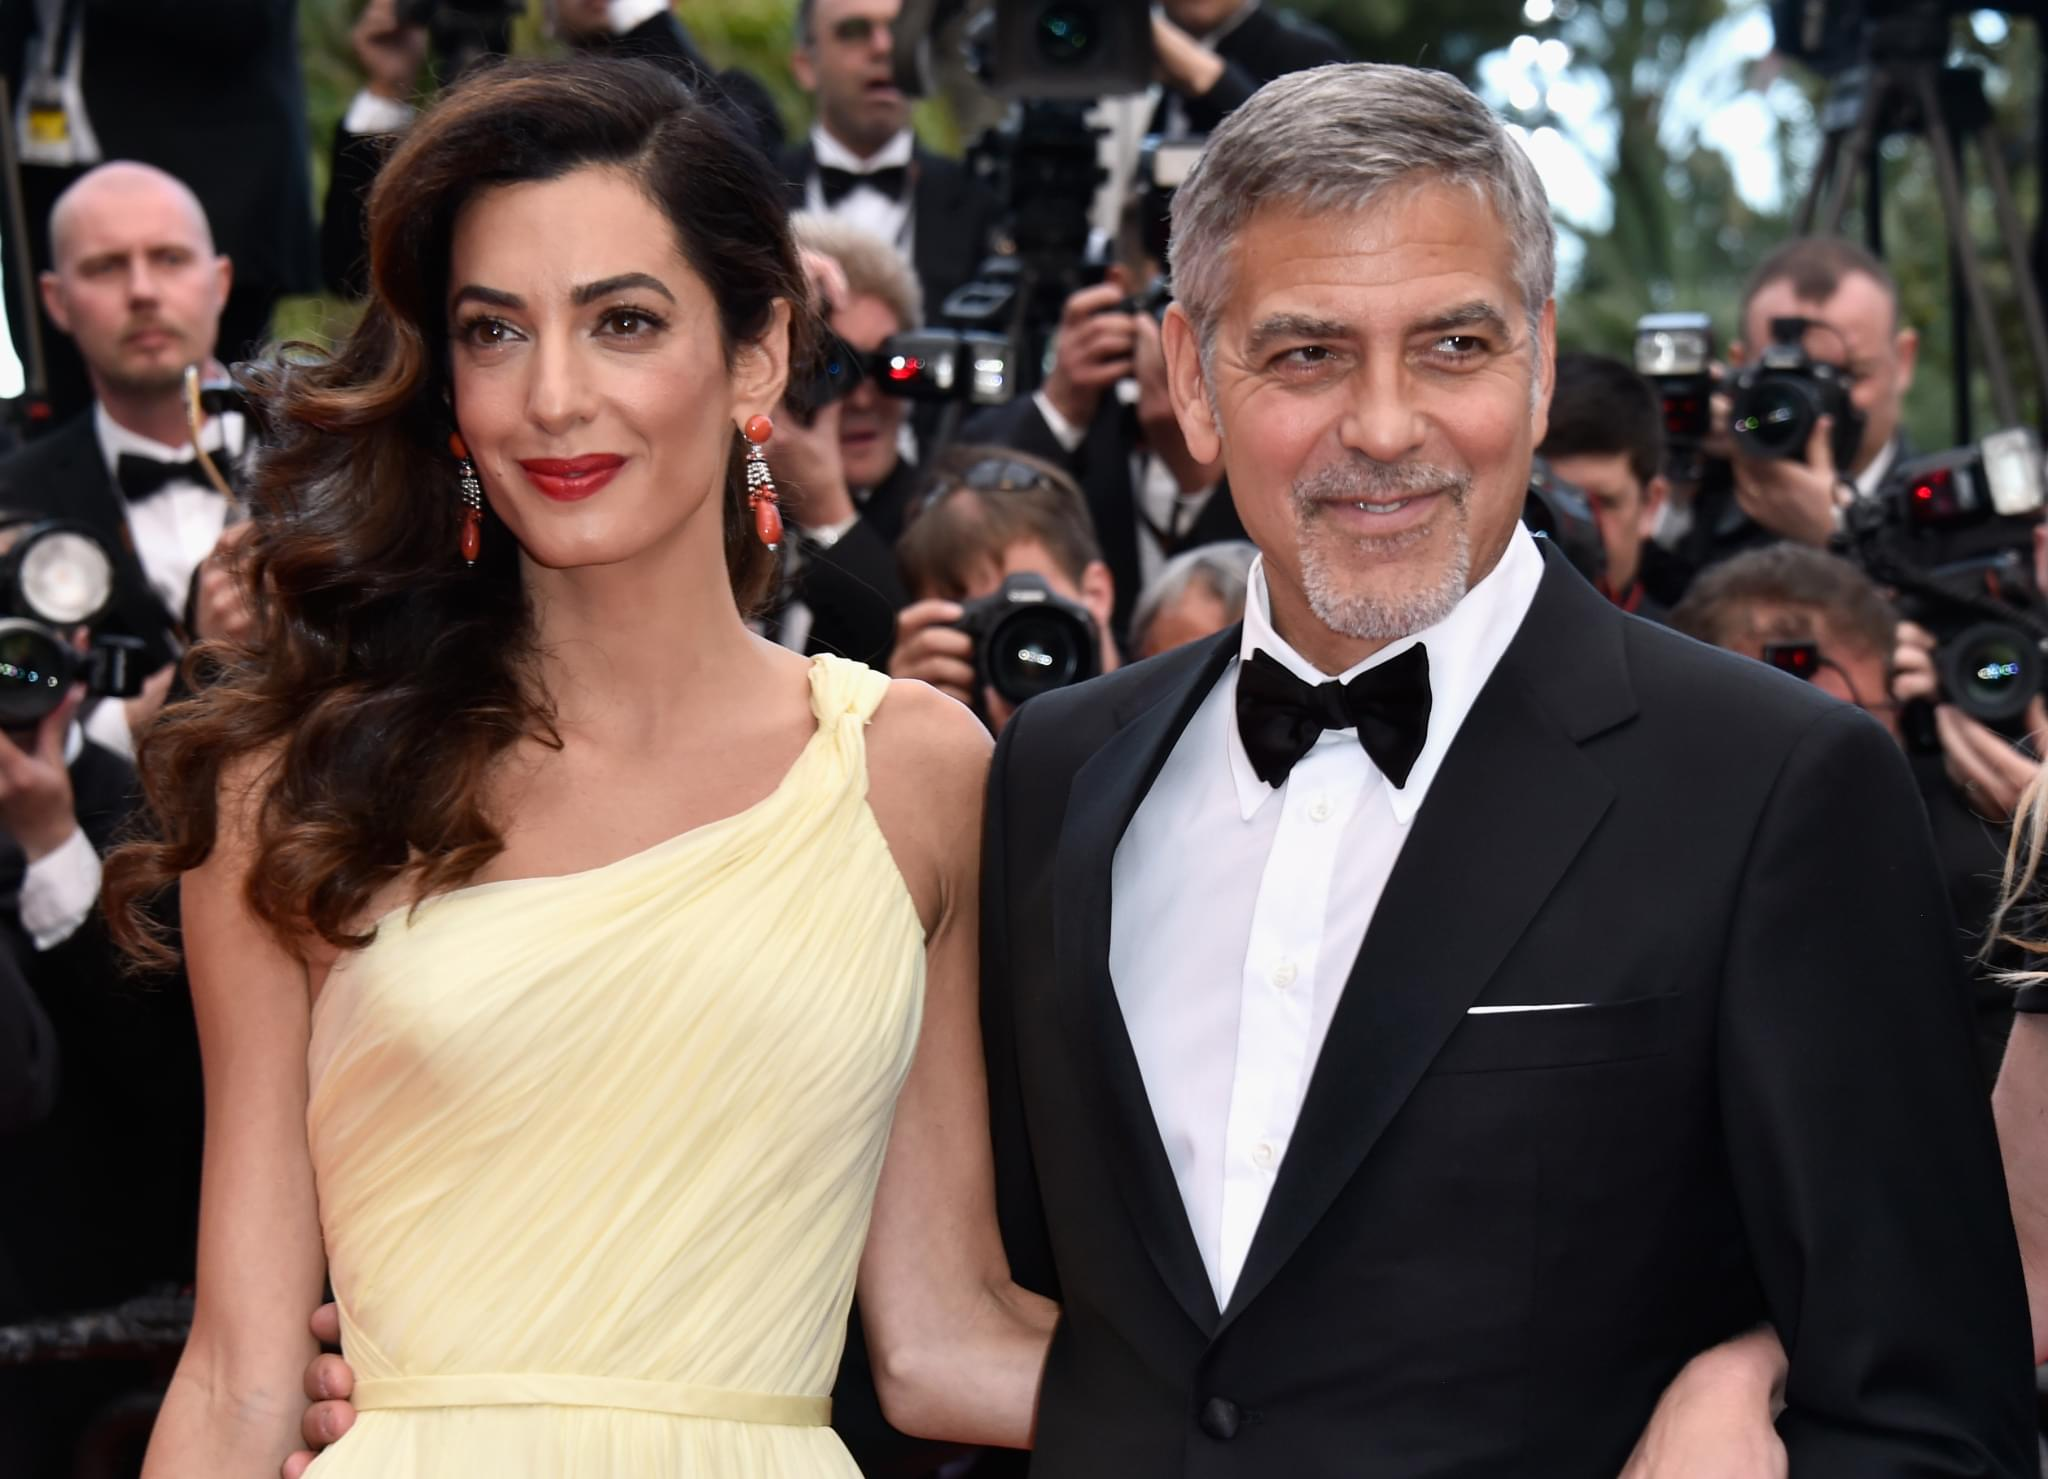 George Clooney Cuts His Own Hair . . . with a Flowbee?